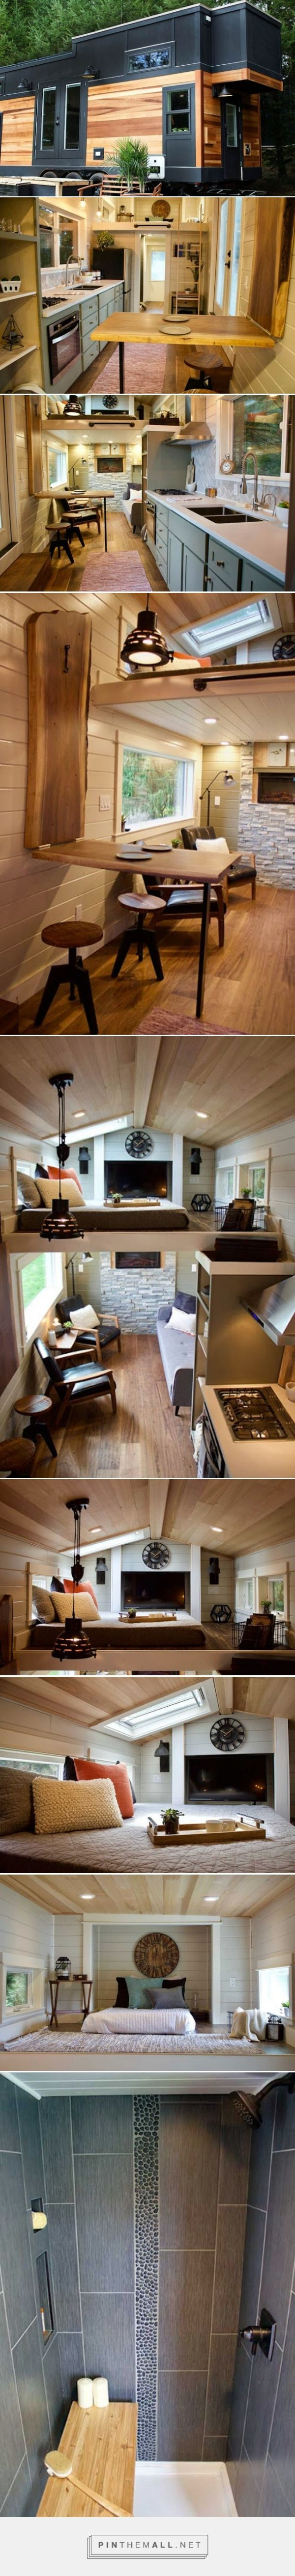 1344 best tiny homes small homes eco friendly pre fabs images on